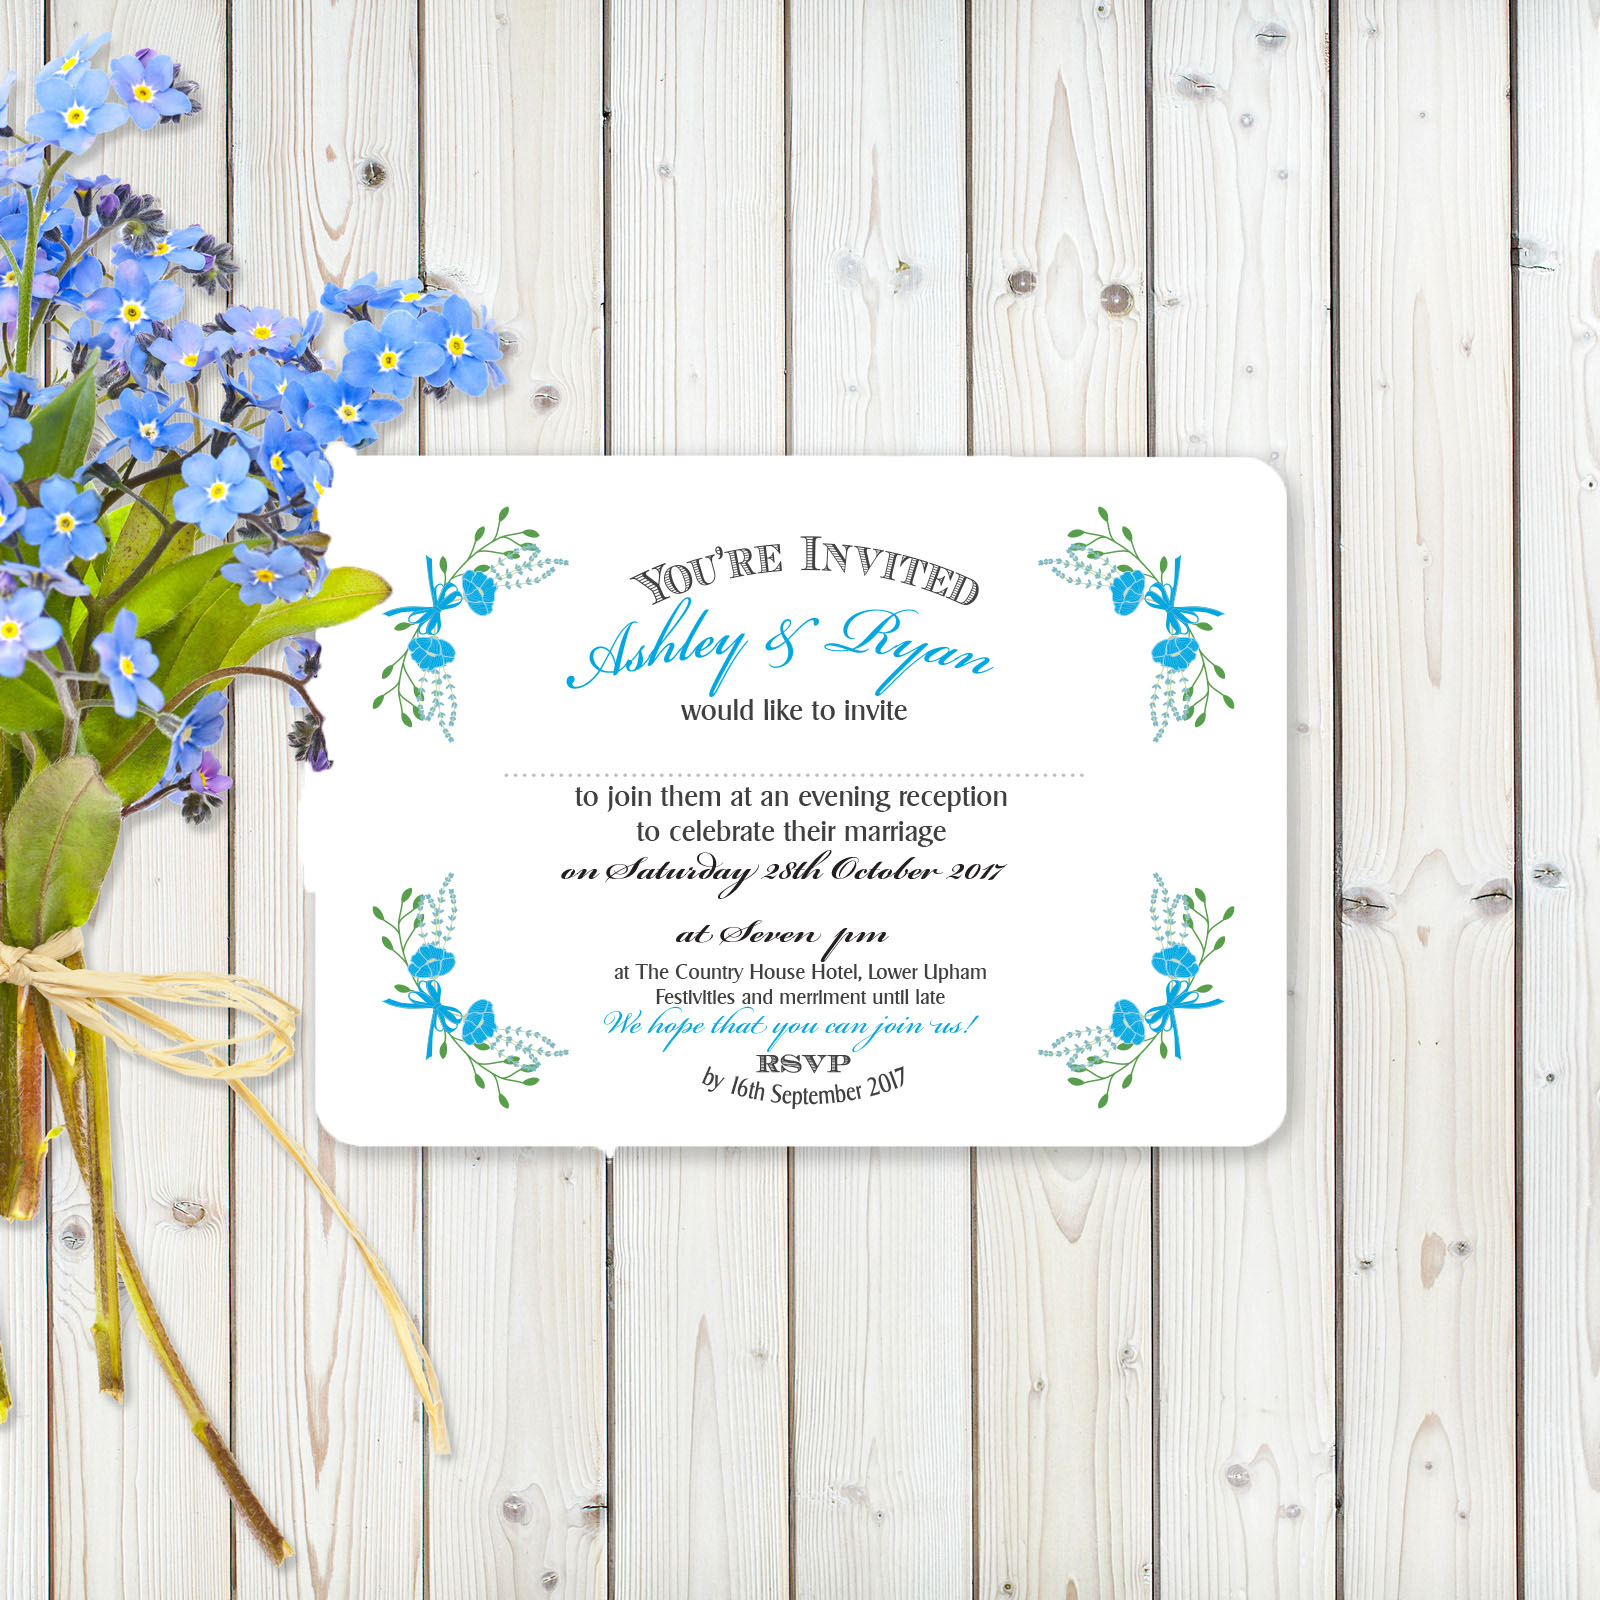 Floral Fantasy Blue on White Card - A6 Evening Invitation